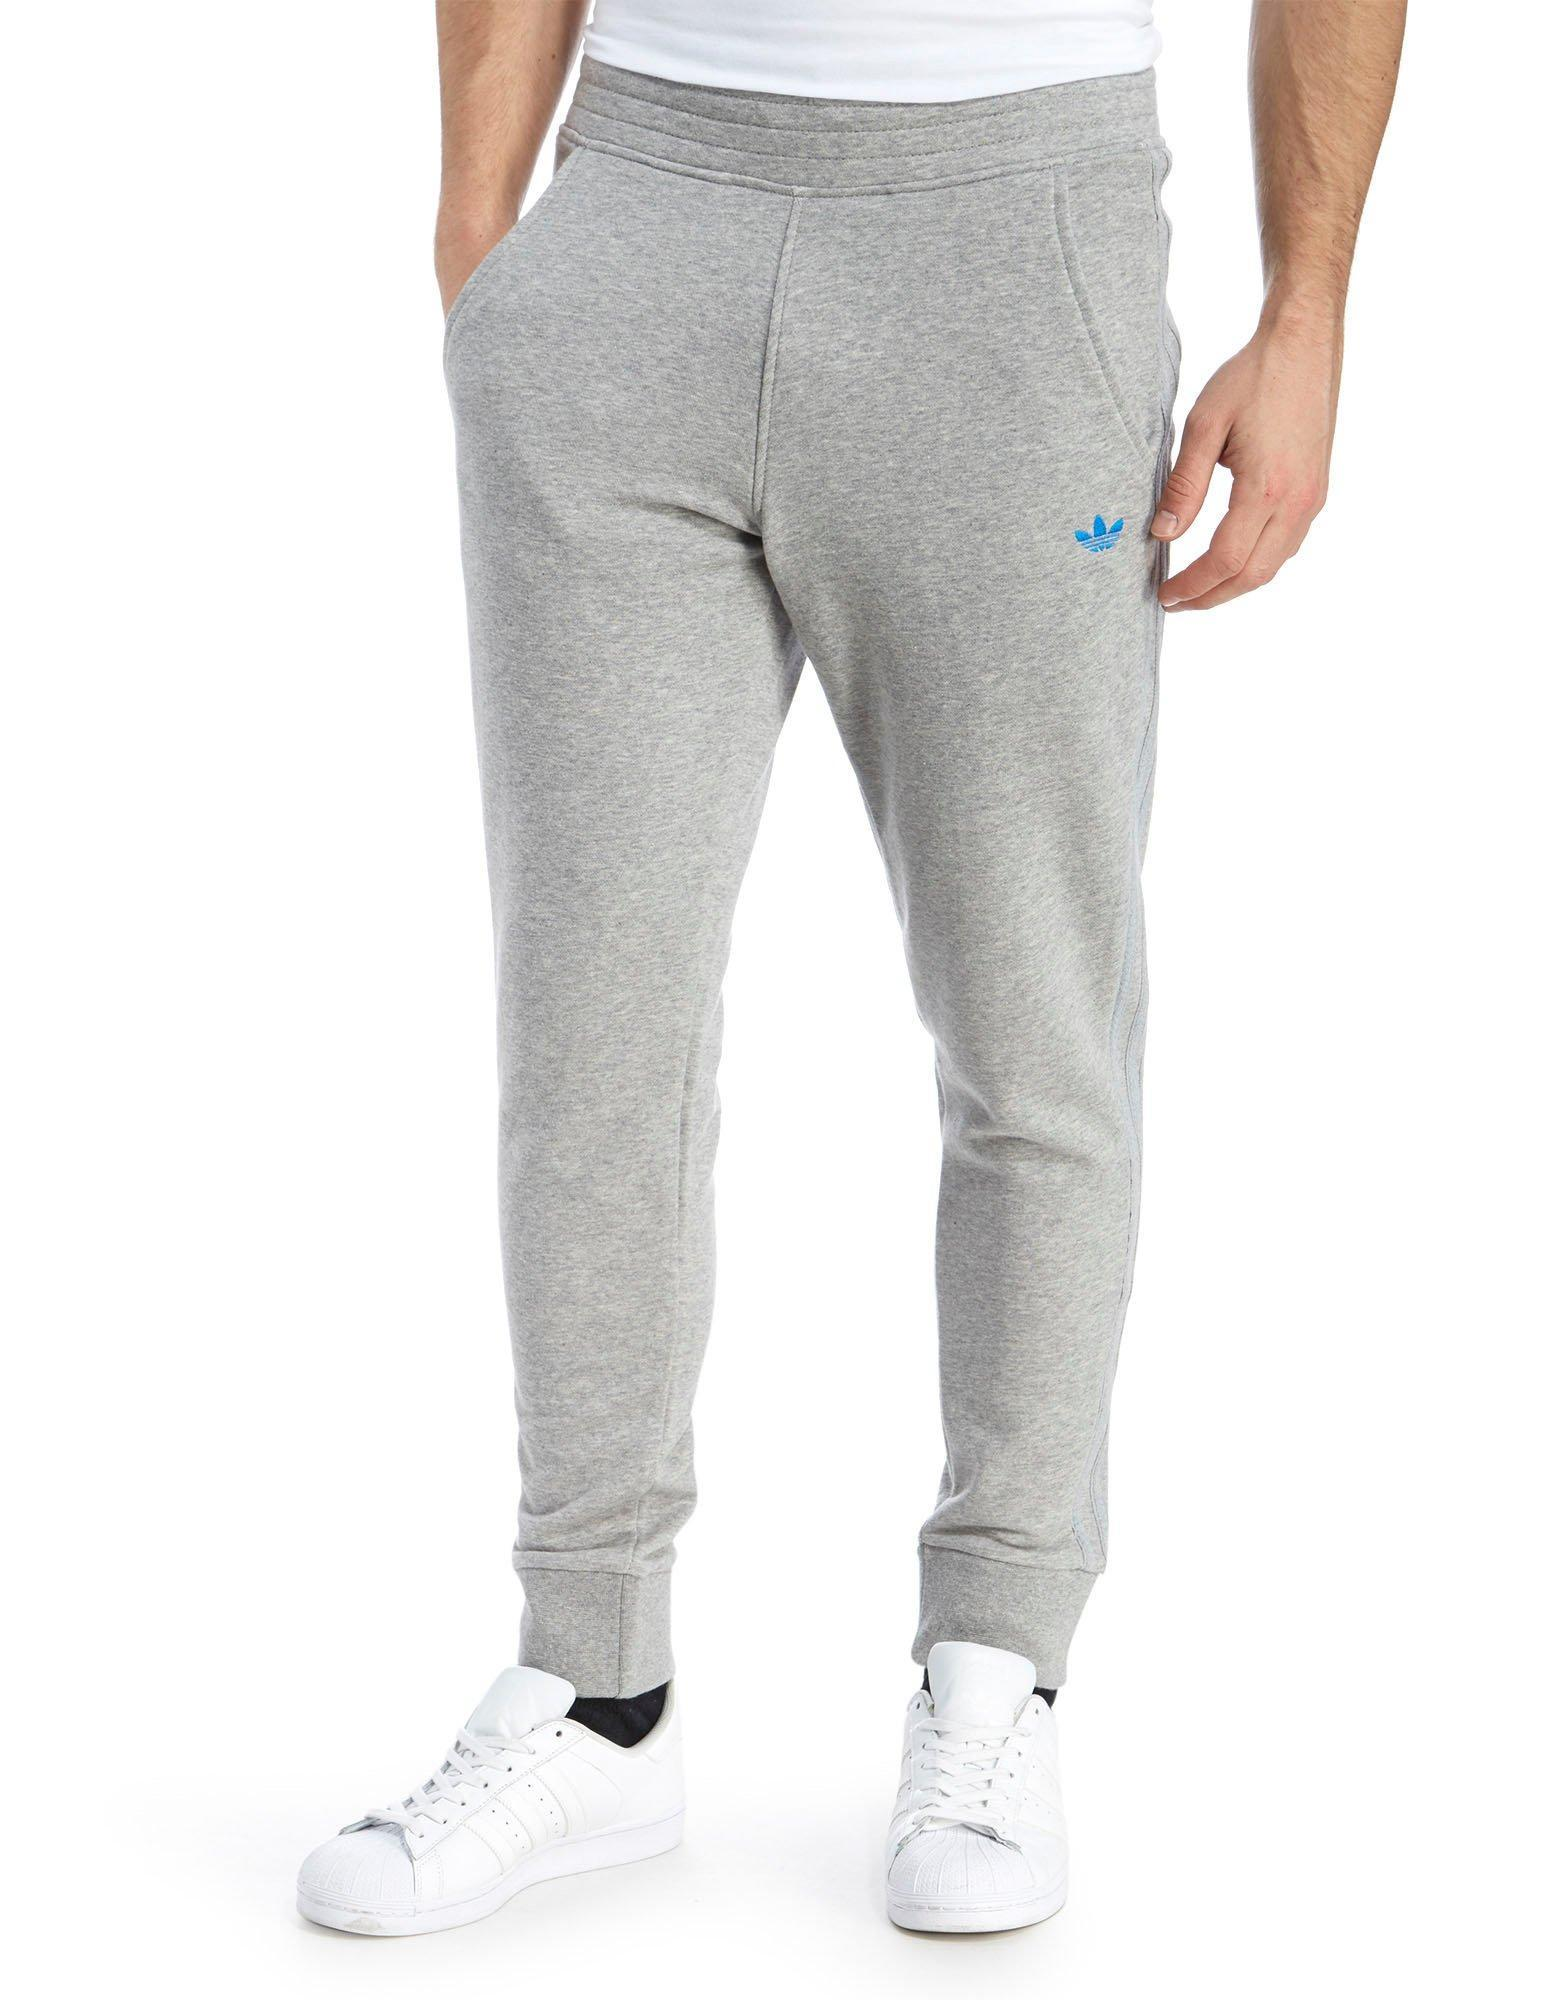 On-seam side pockets and a Velcro® back pocket make these sweatpants even better. Elastic waistband with inside drawstring ; Soft cotton/polyester ; Machine wash; imported ; Big inseam length abt. 29